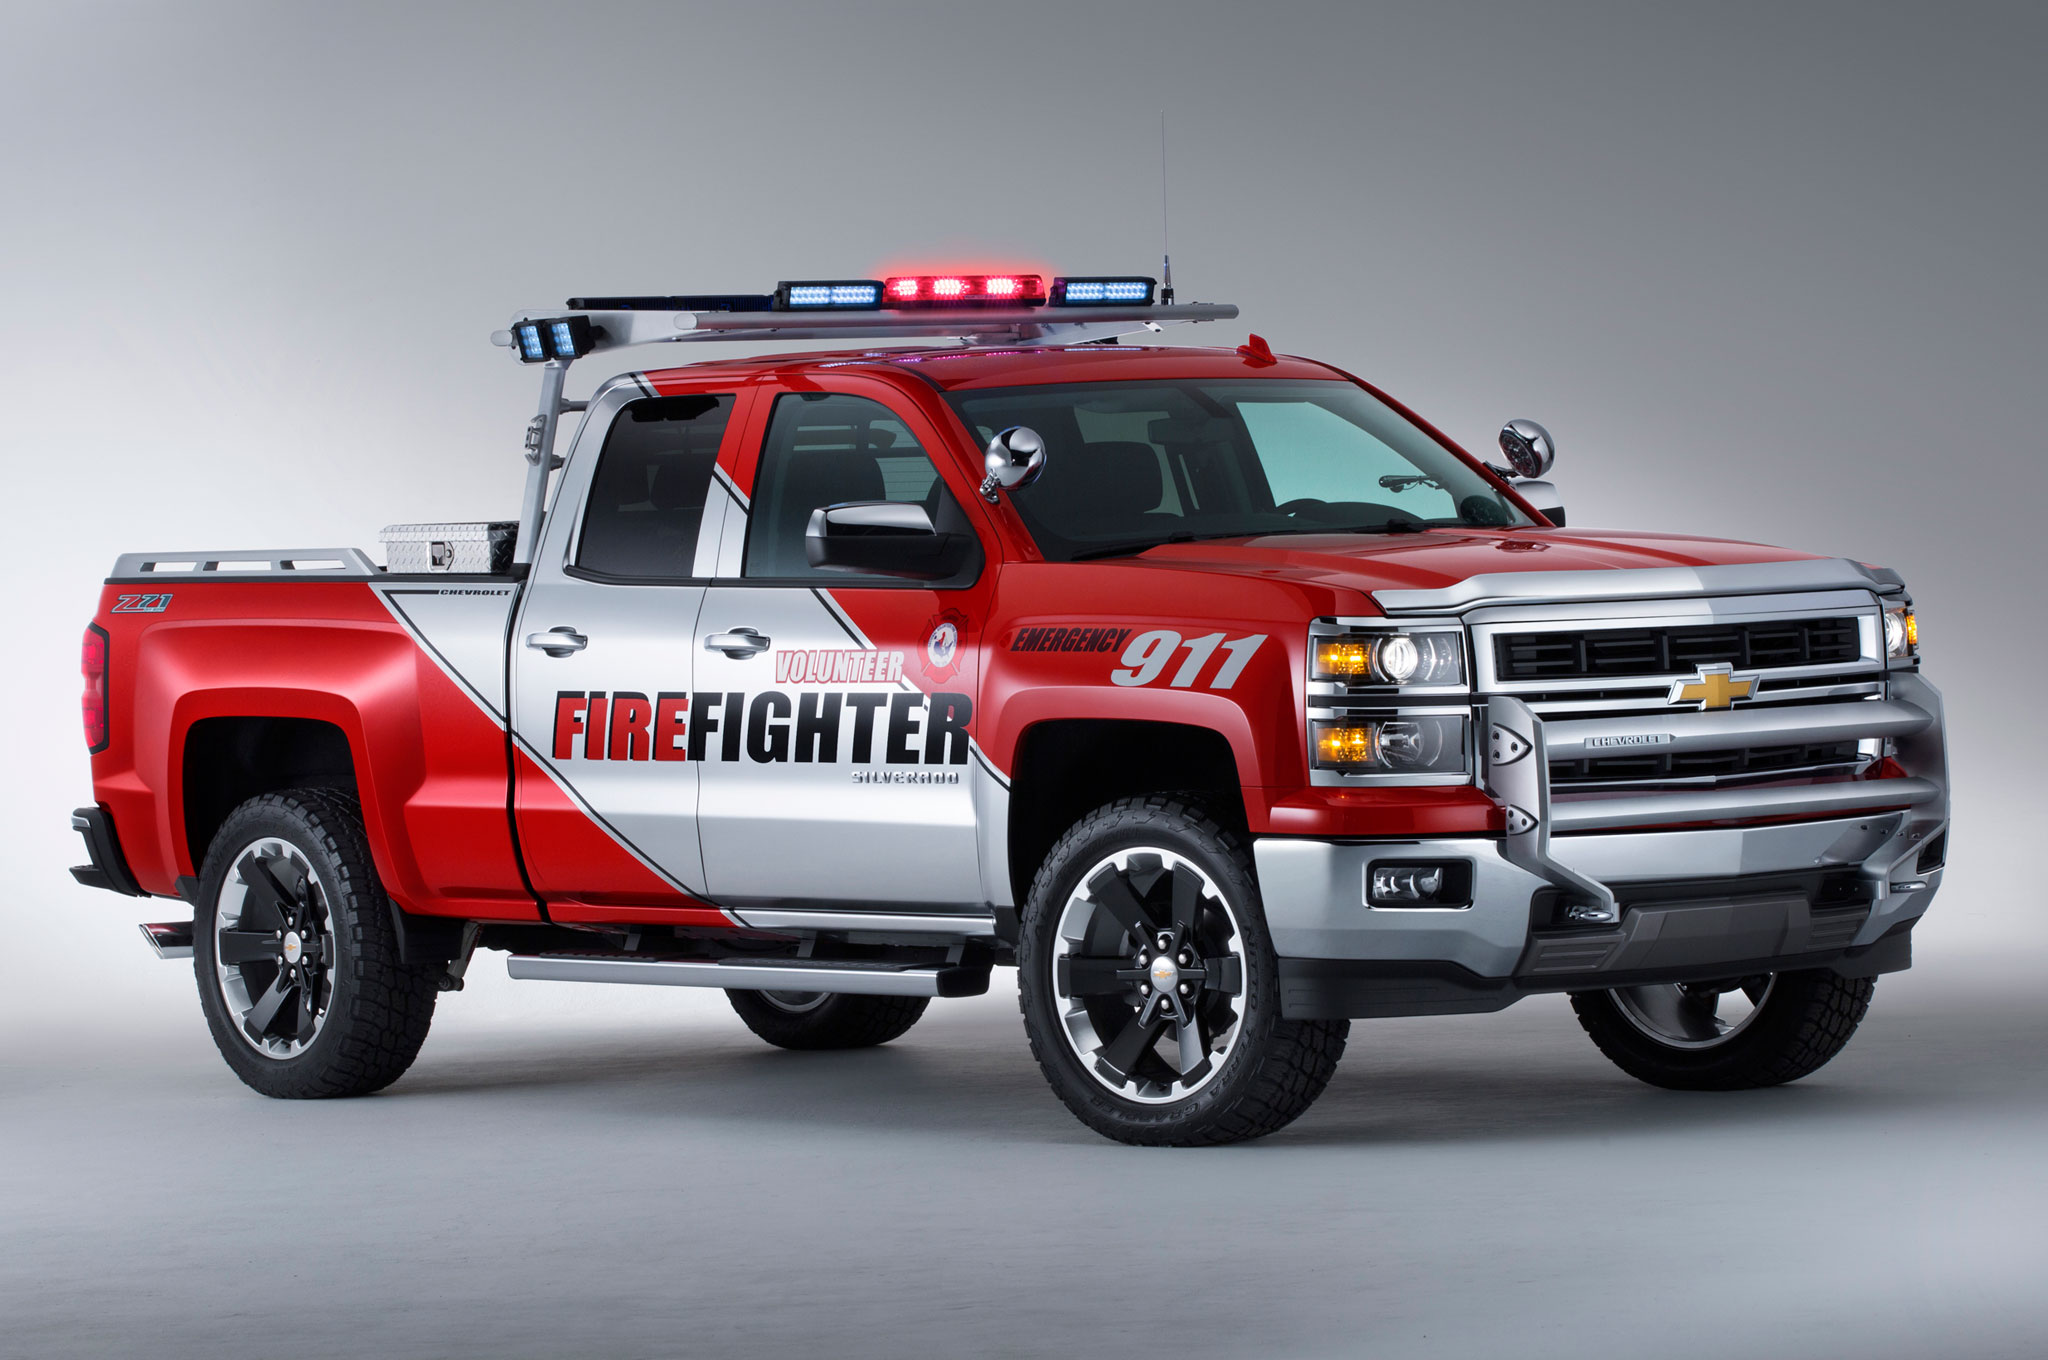 2013 Chevrolet Silverado Z71 Volunteer Firefighter SEMA Concept Truck Right Side1